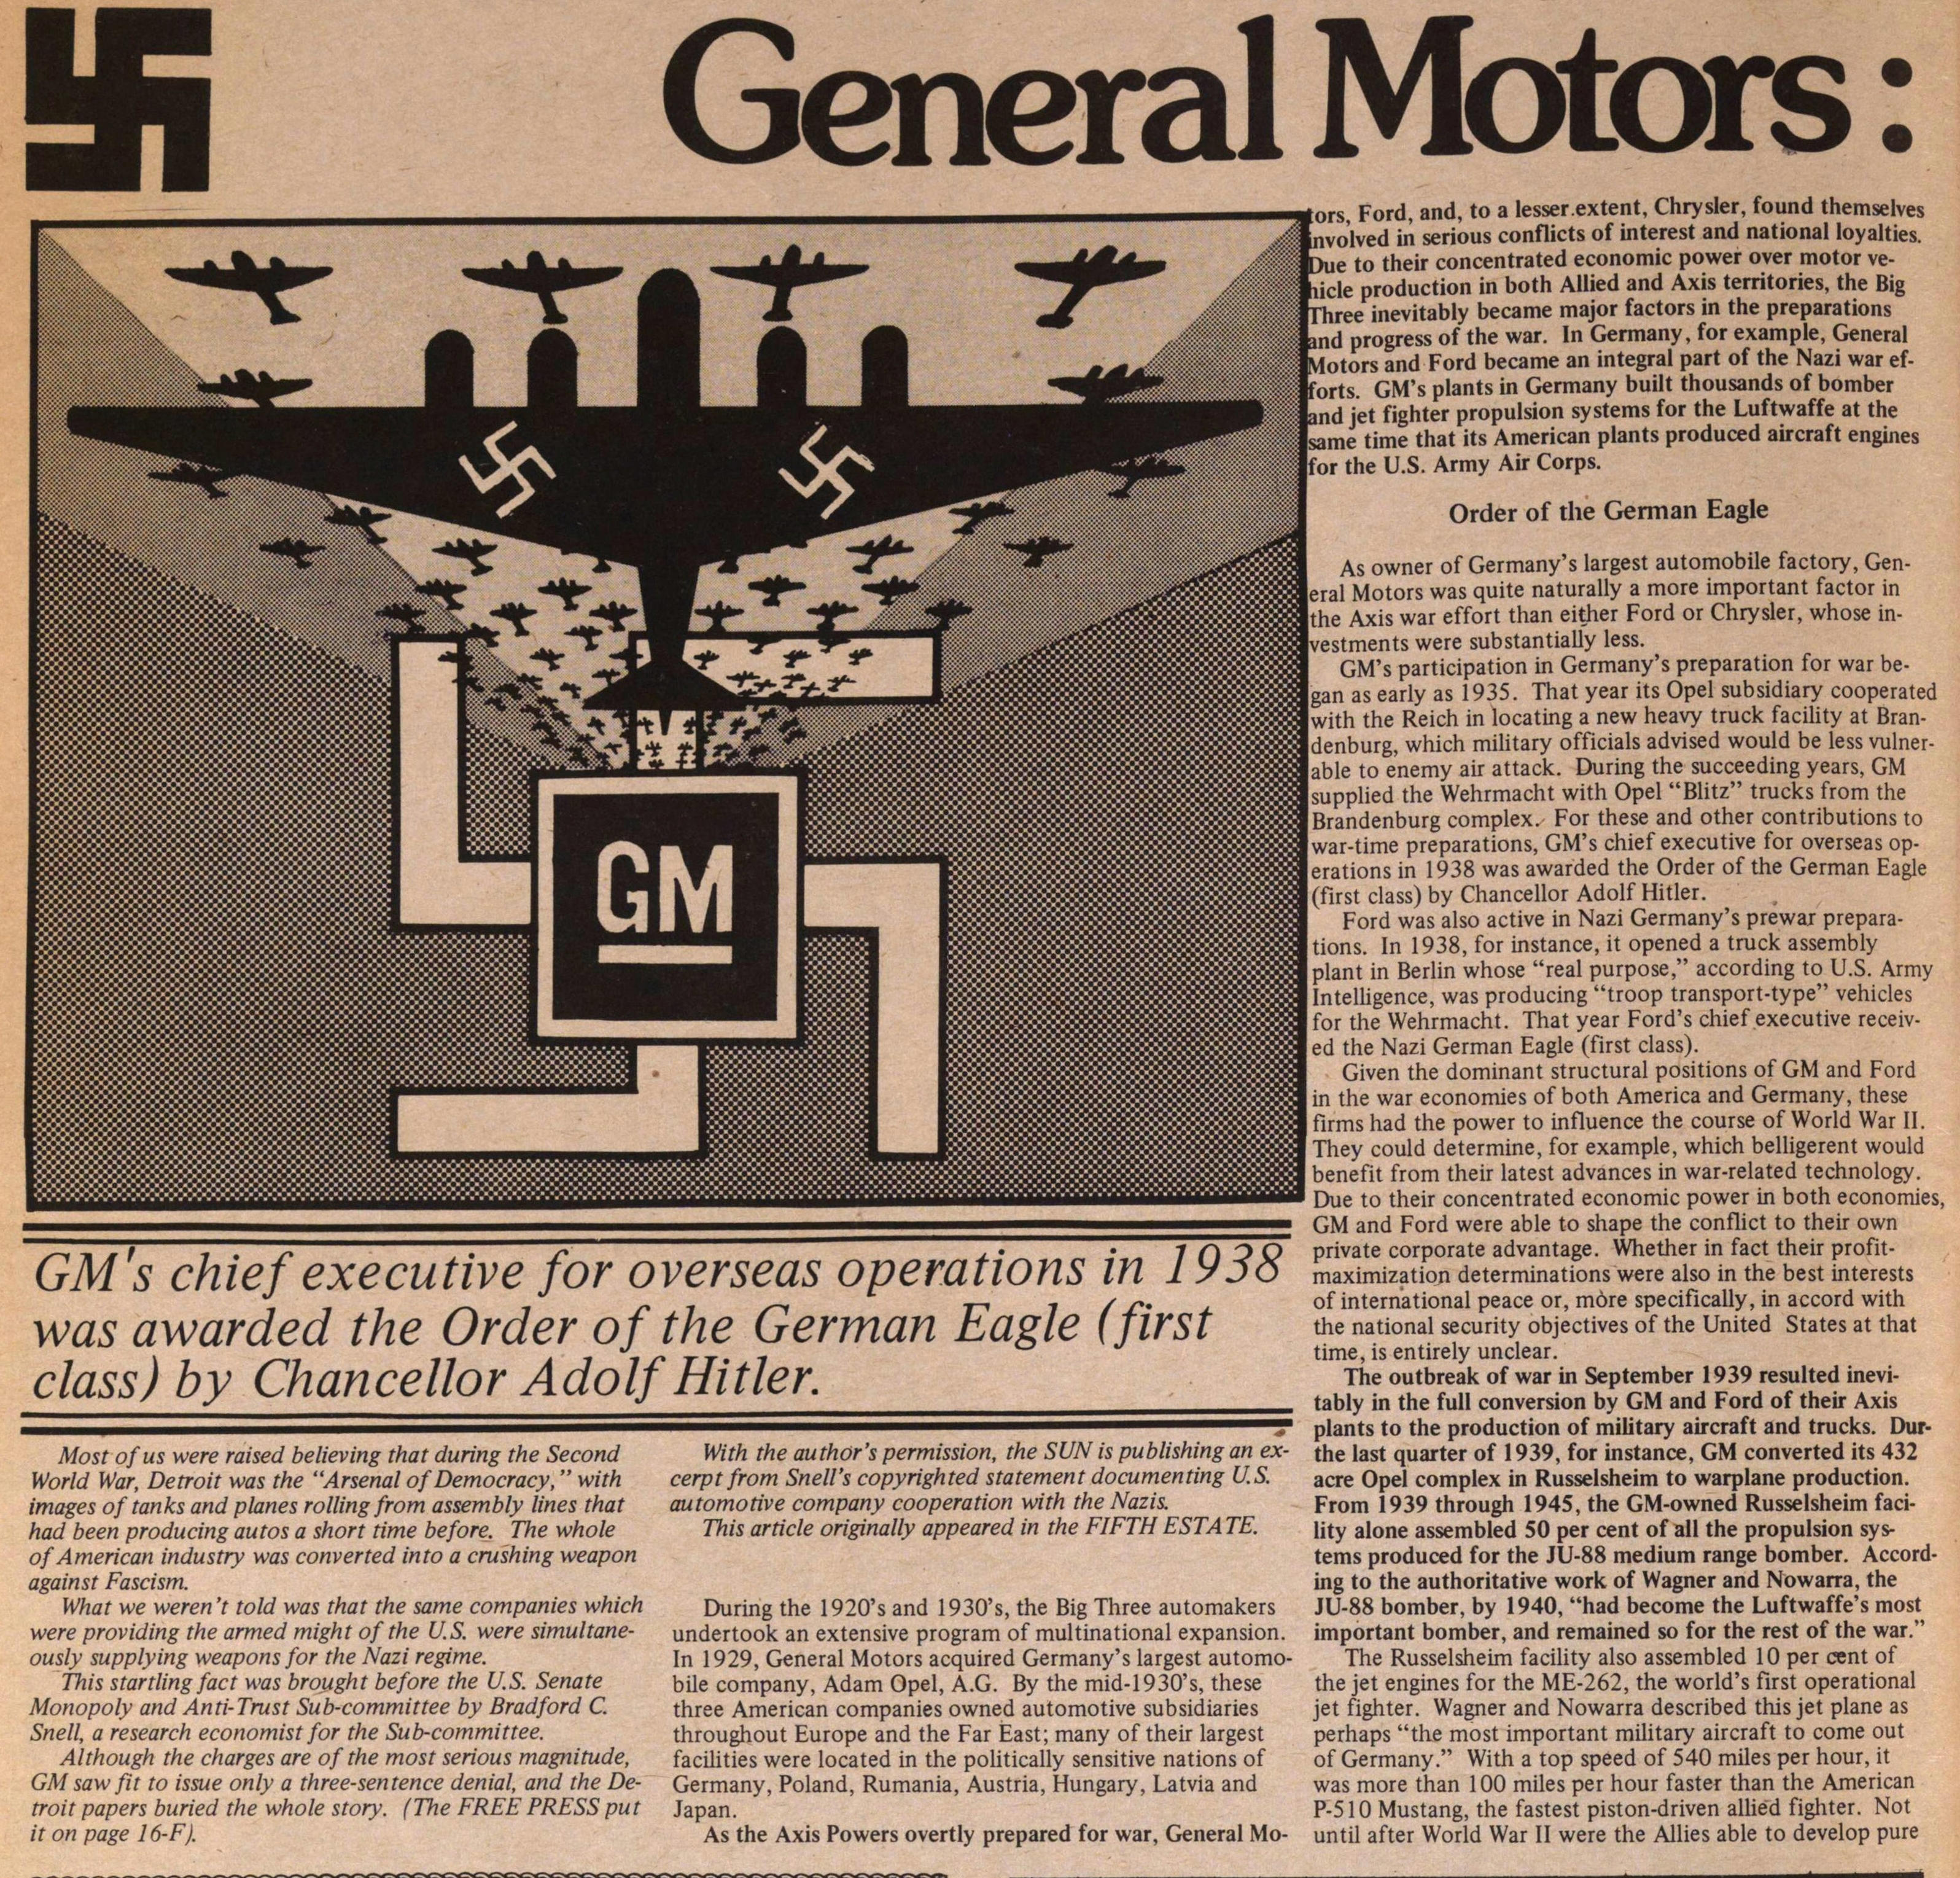 General Motors: Mark of Excellence image